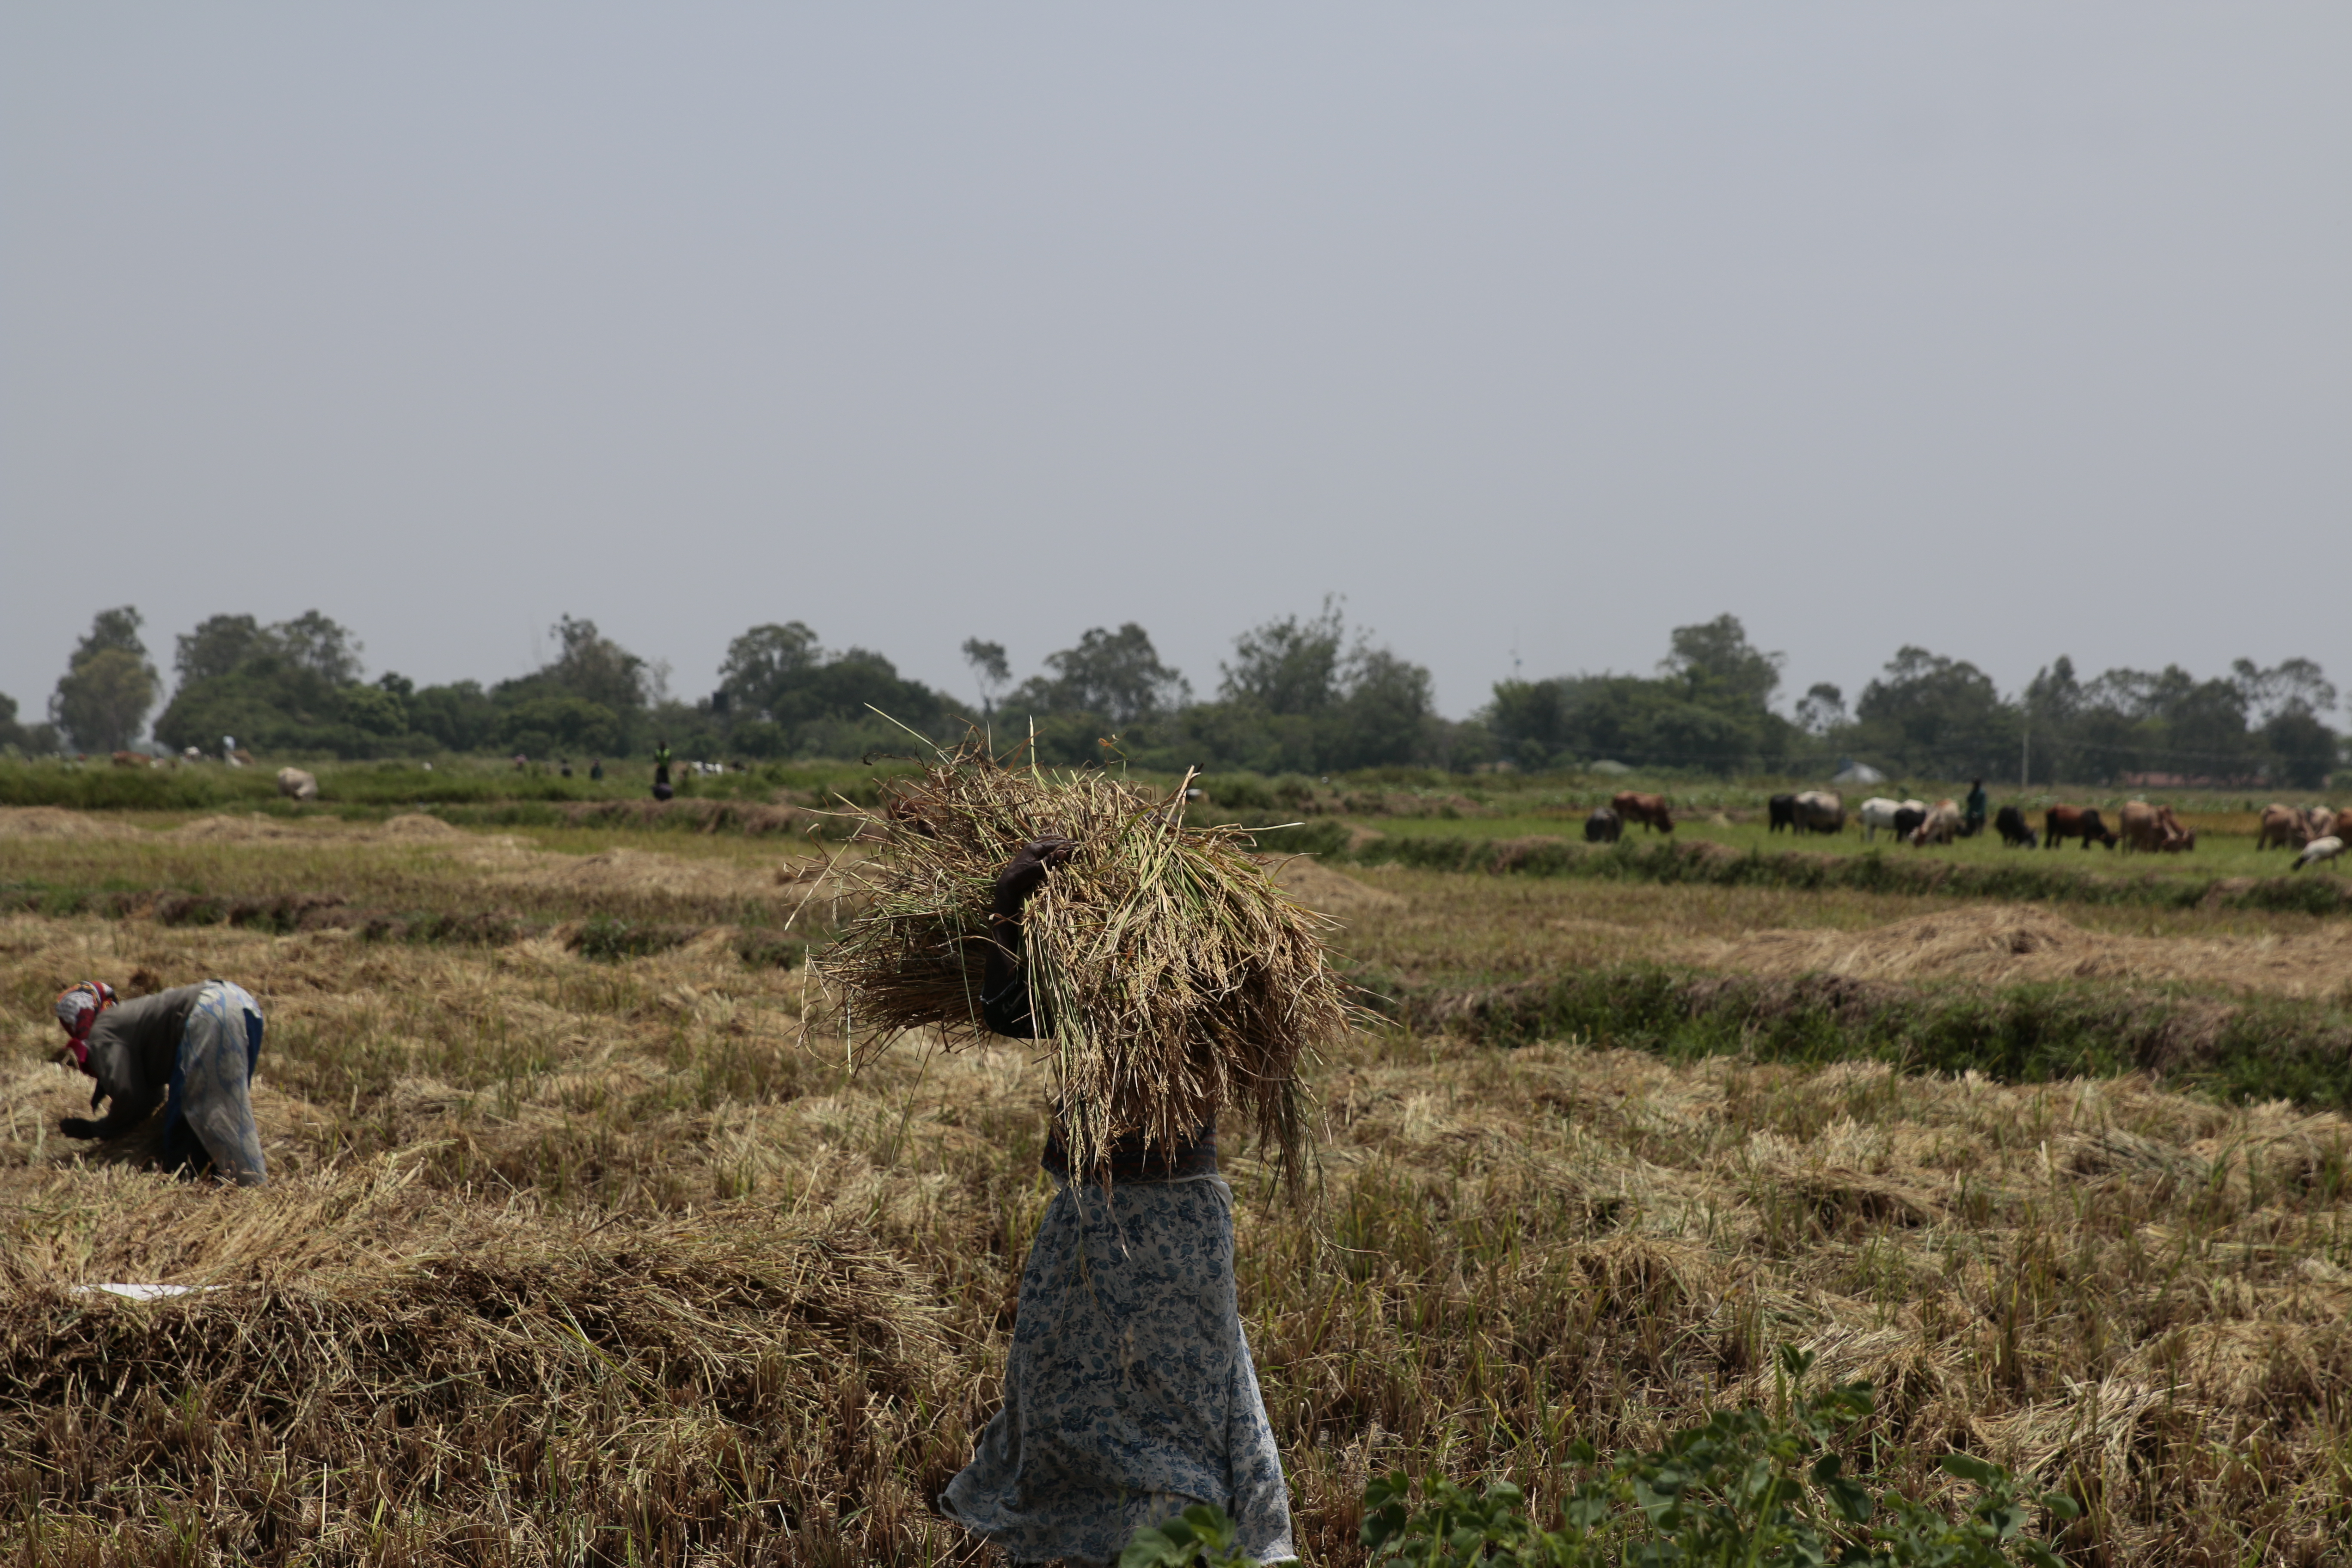 2SCALE farmers have increased yields by 30%.